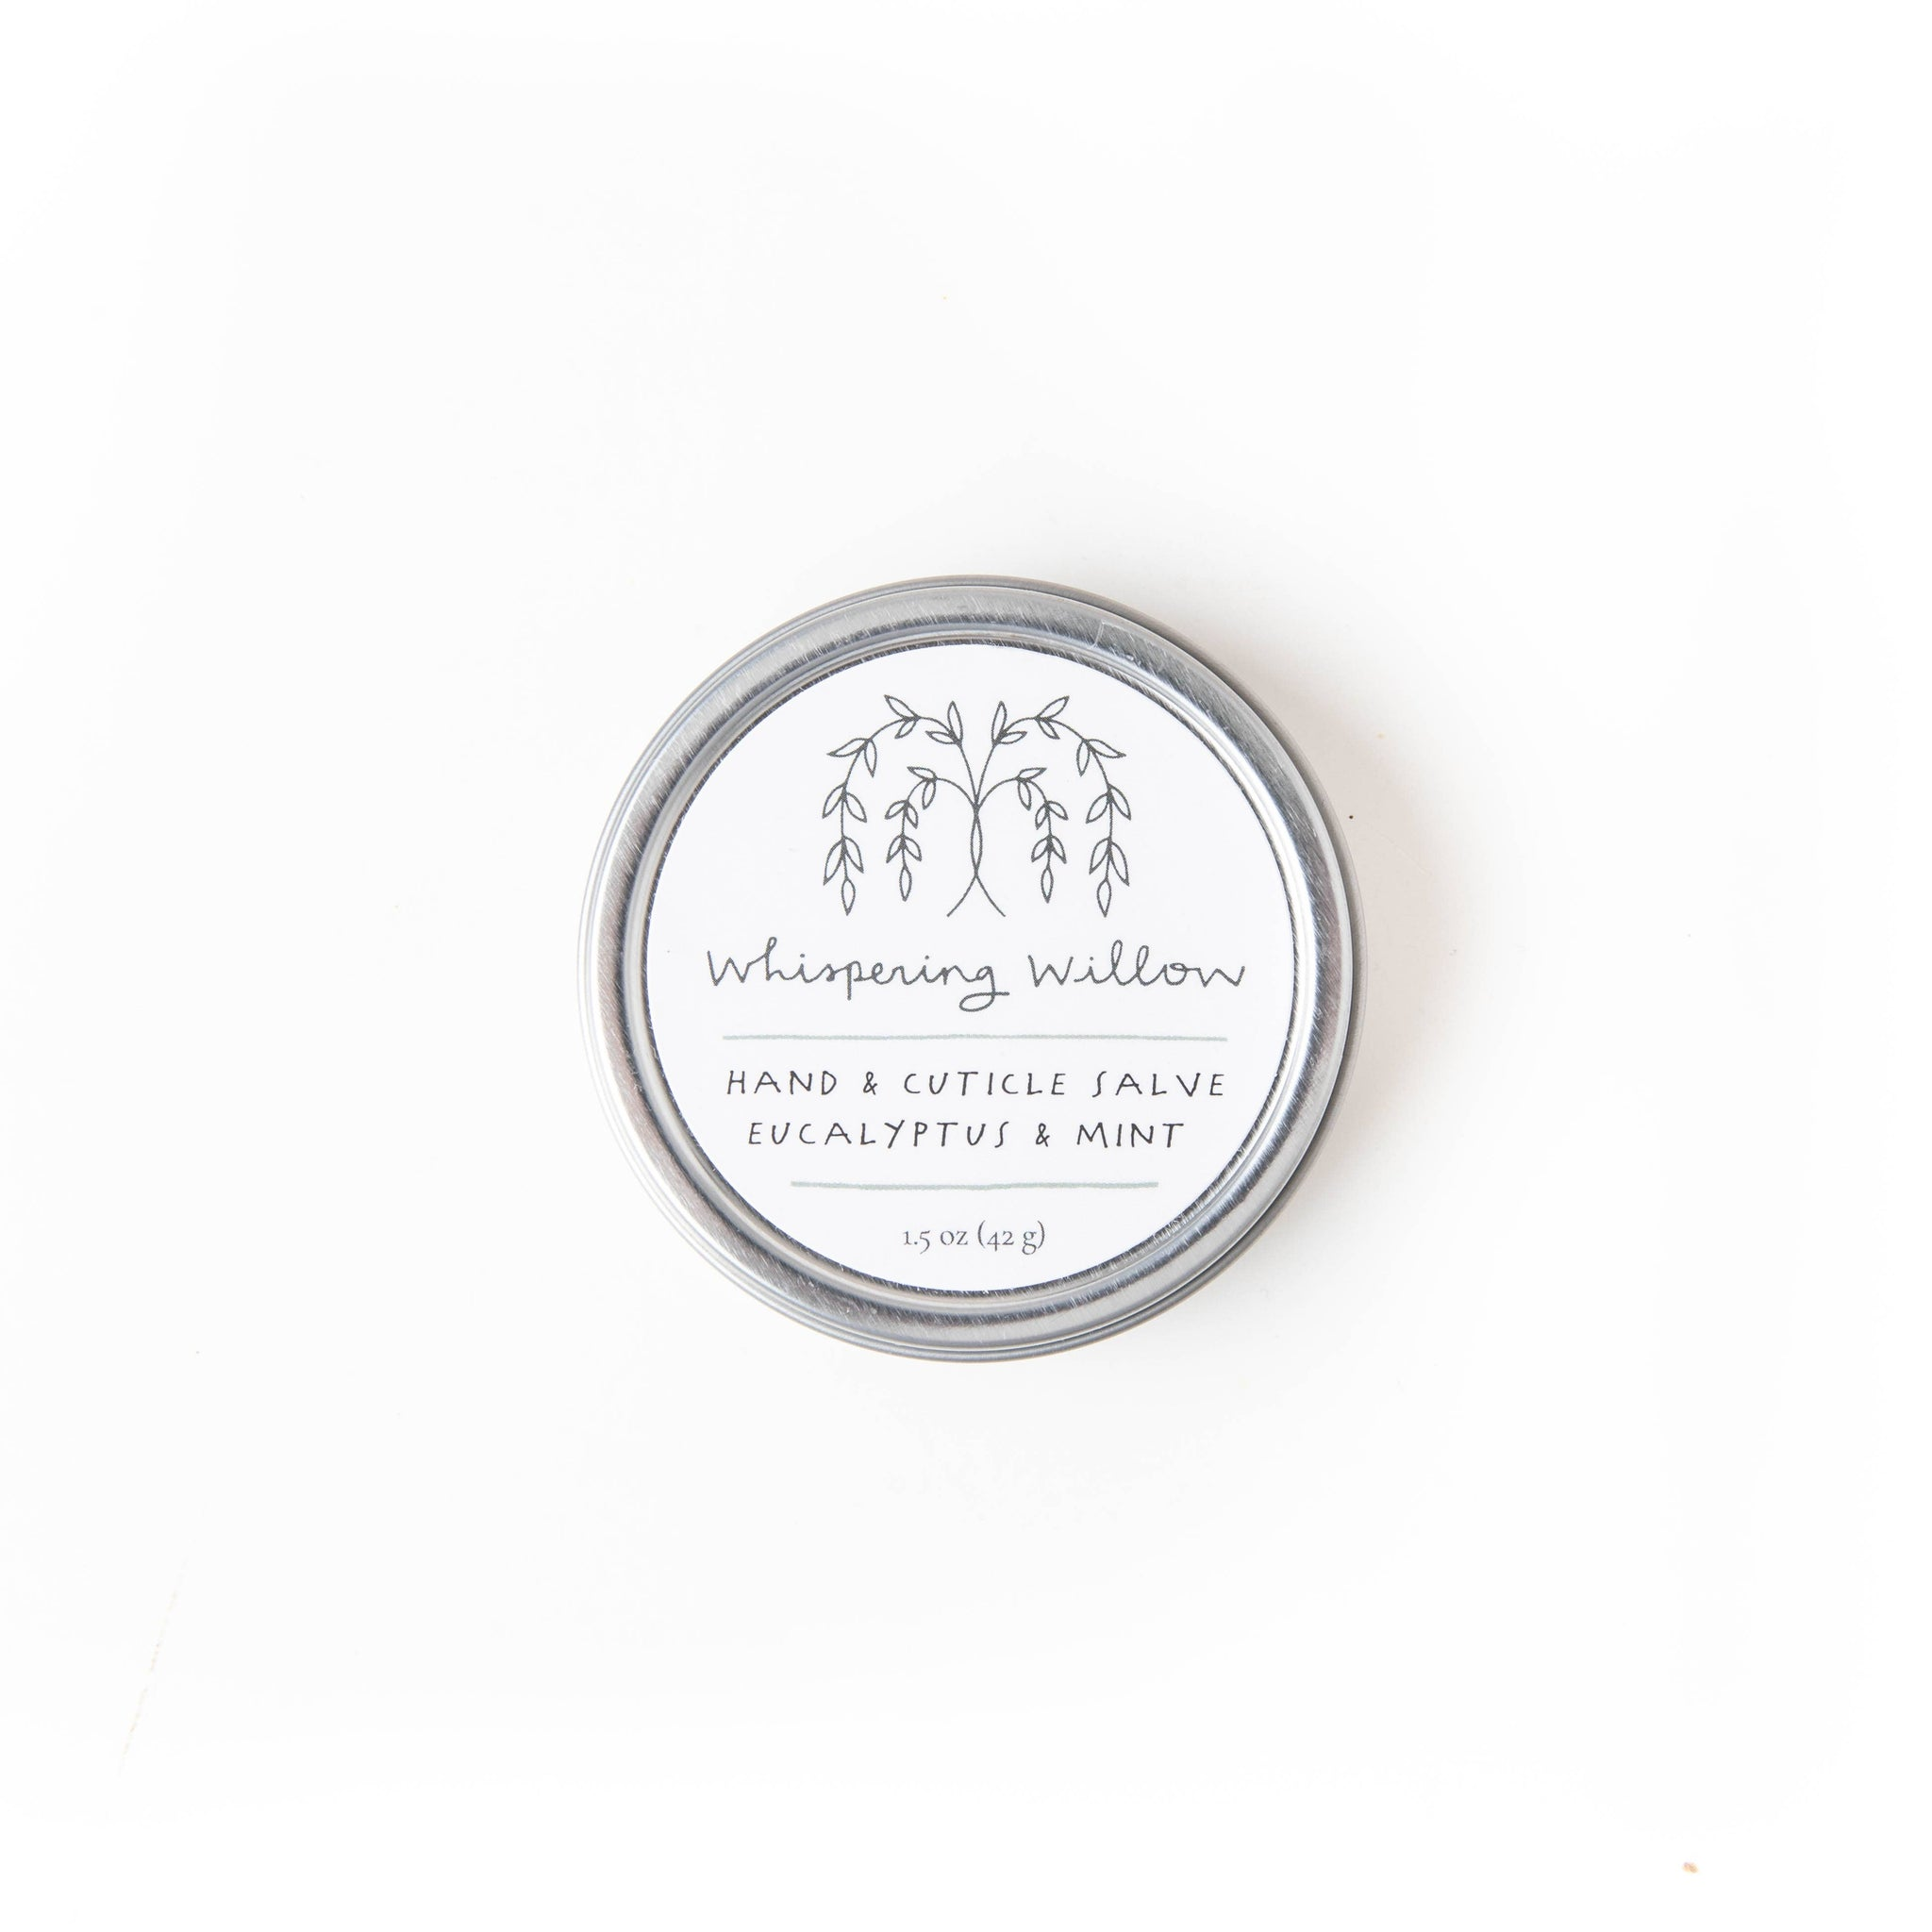 Eucalyptus & Mint Hand & Cuticle Salve